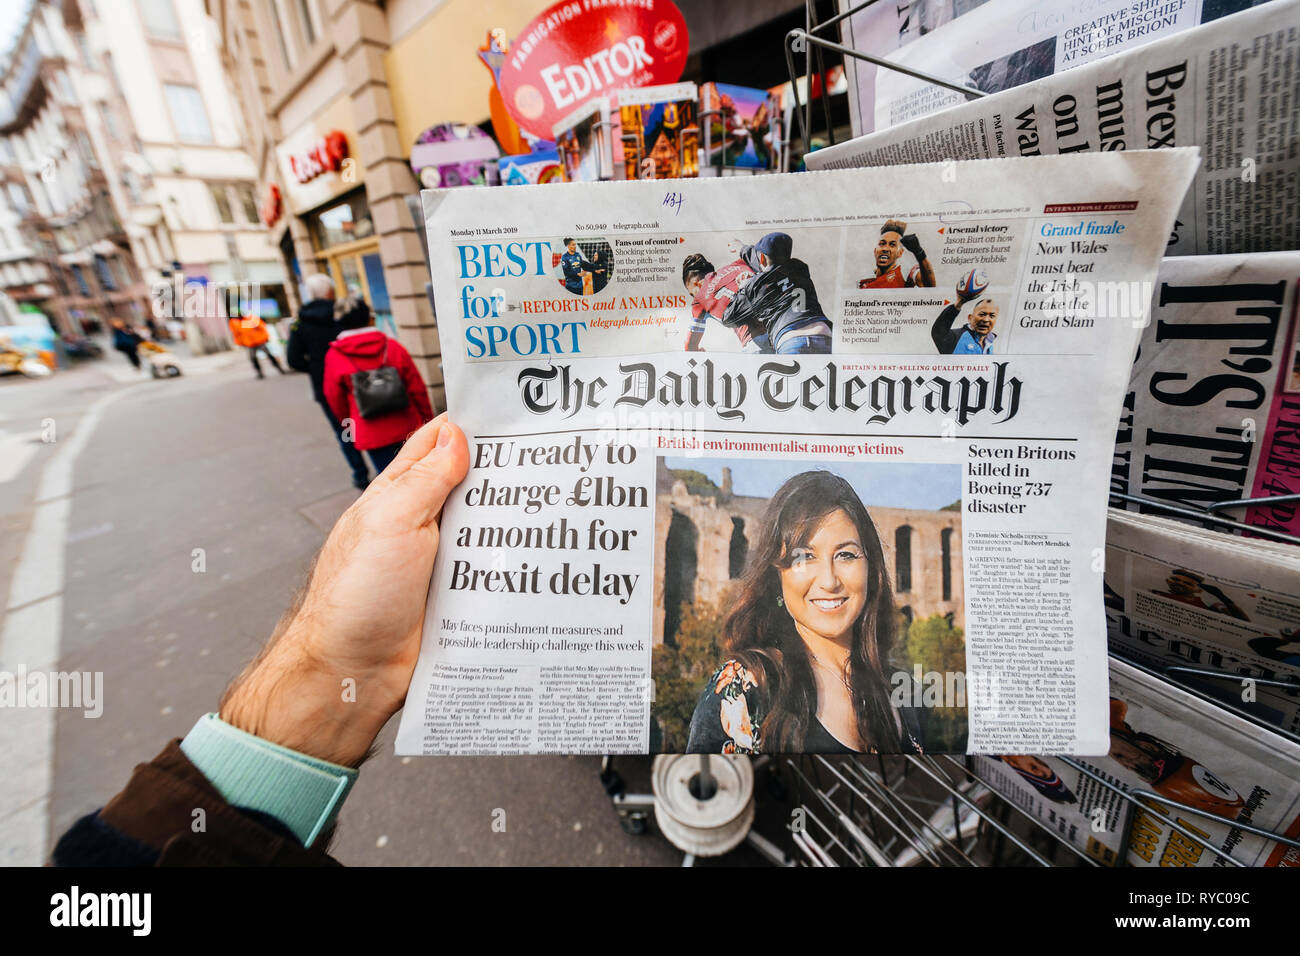 Paris, France - Mar 12, 2019: Man buying press kiosk British newspaper The Daily Telegraph featuring on the cover text that Eu ready to charge 1 billion a month for Brexit delay - Stock Image